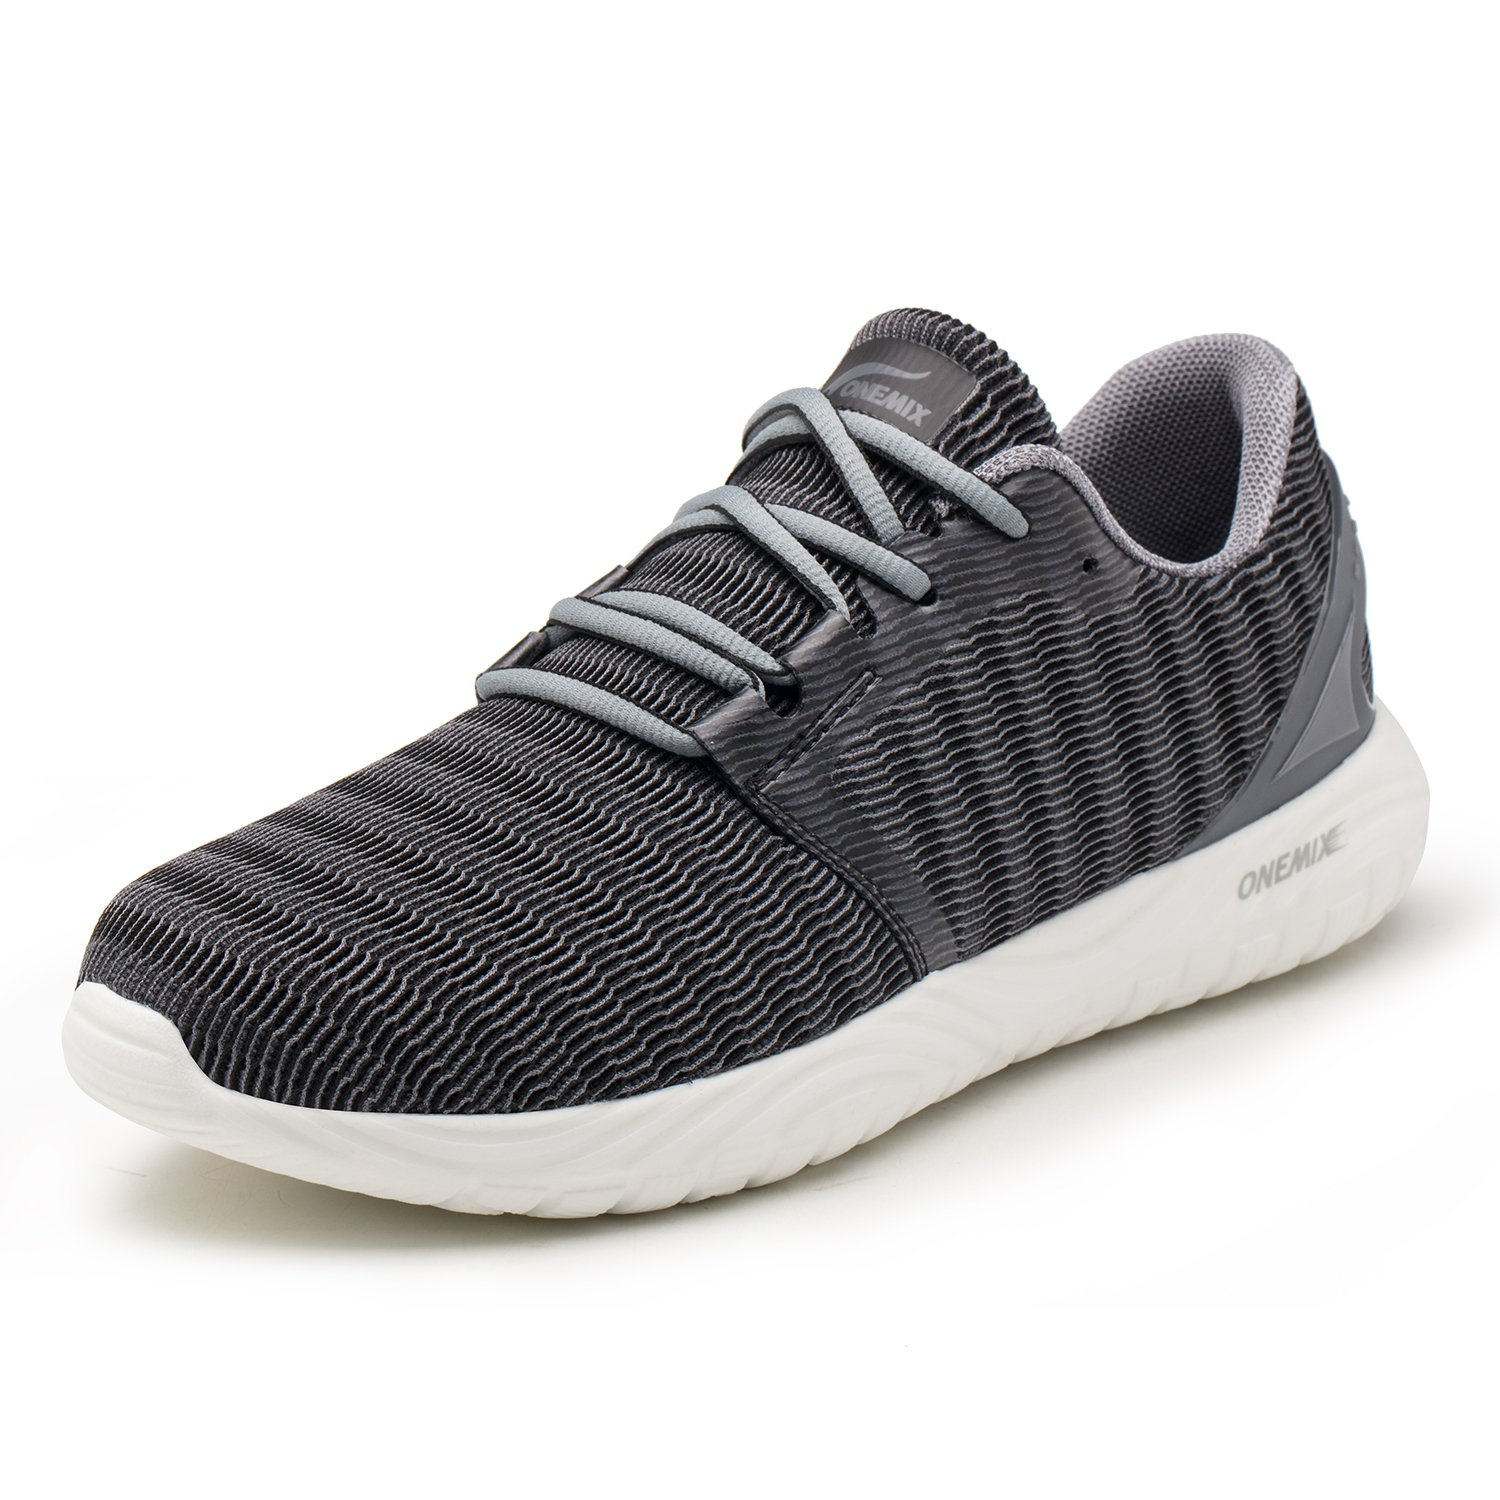 ONEMIX Baskets Mode Chaussures de Sport Homme Running Lé ger Respirantes Course Sneakers Multisports Outdoor Casual Gris Noir 45